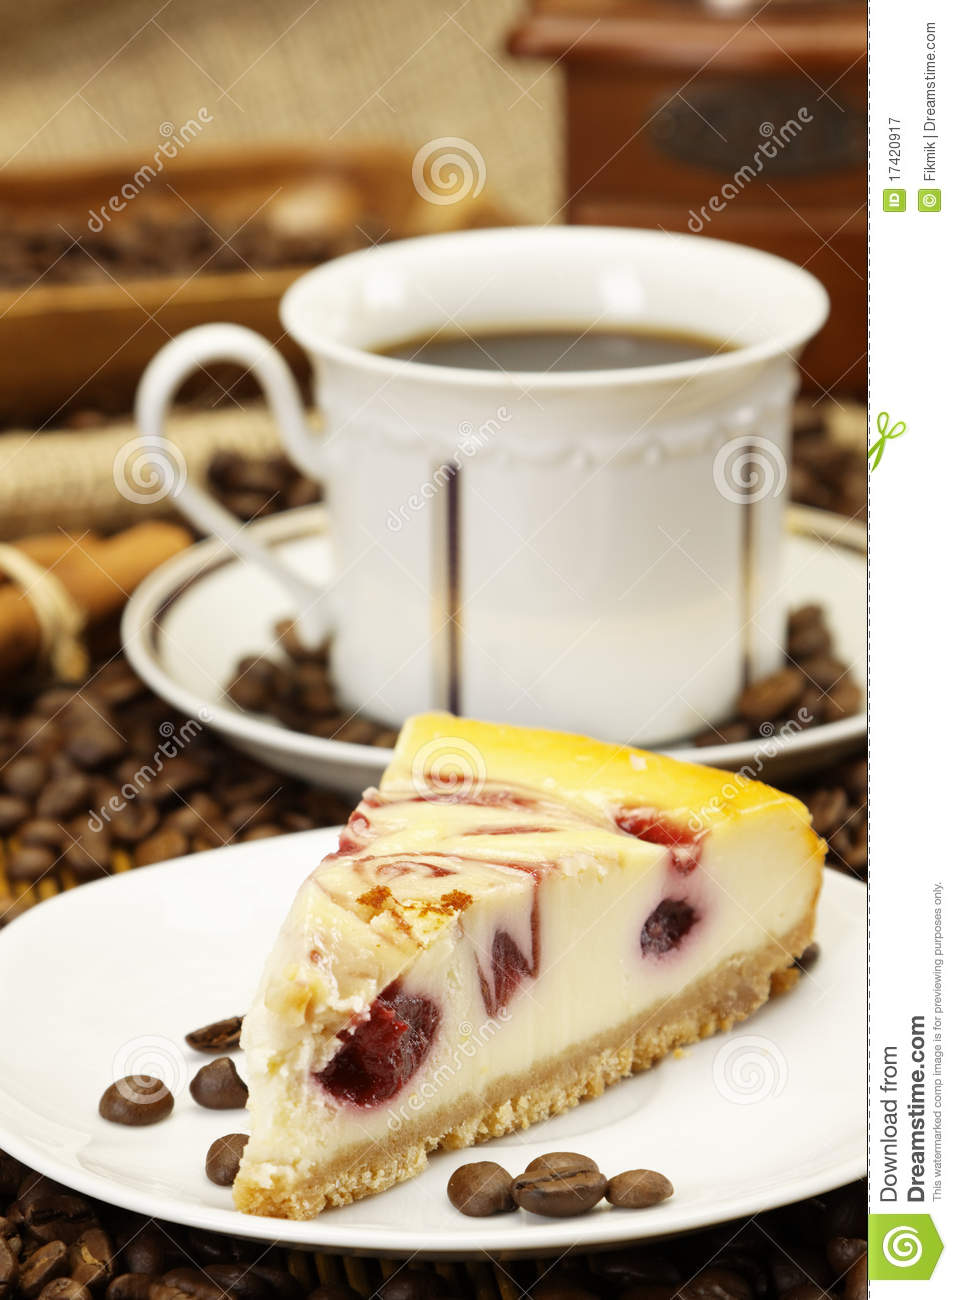 Delicious Piece Of Cake And Coffee Royalty Free Stock